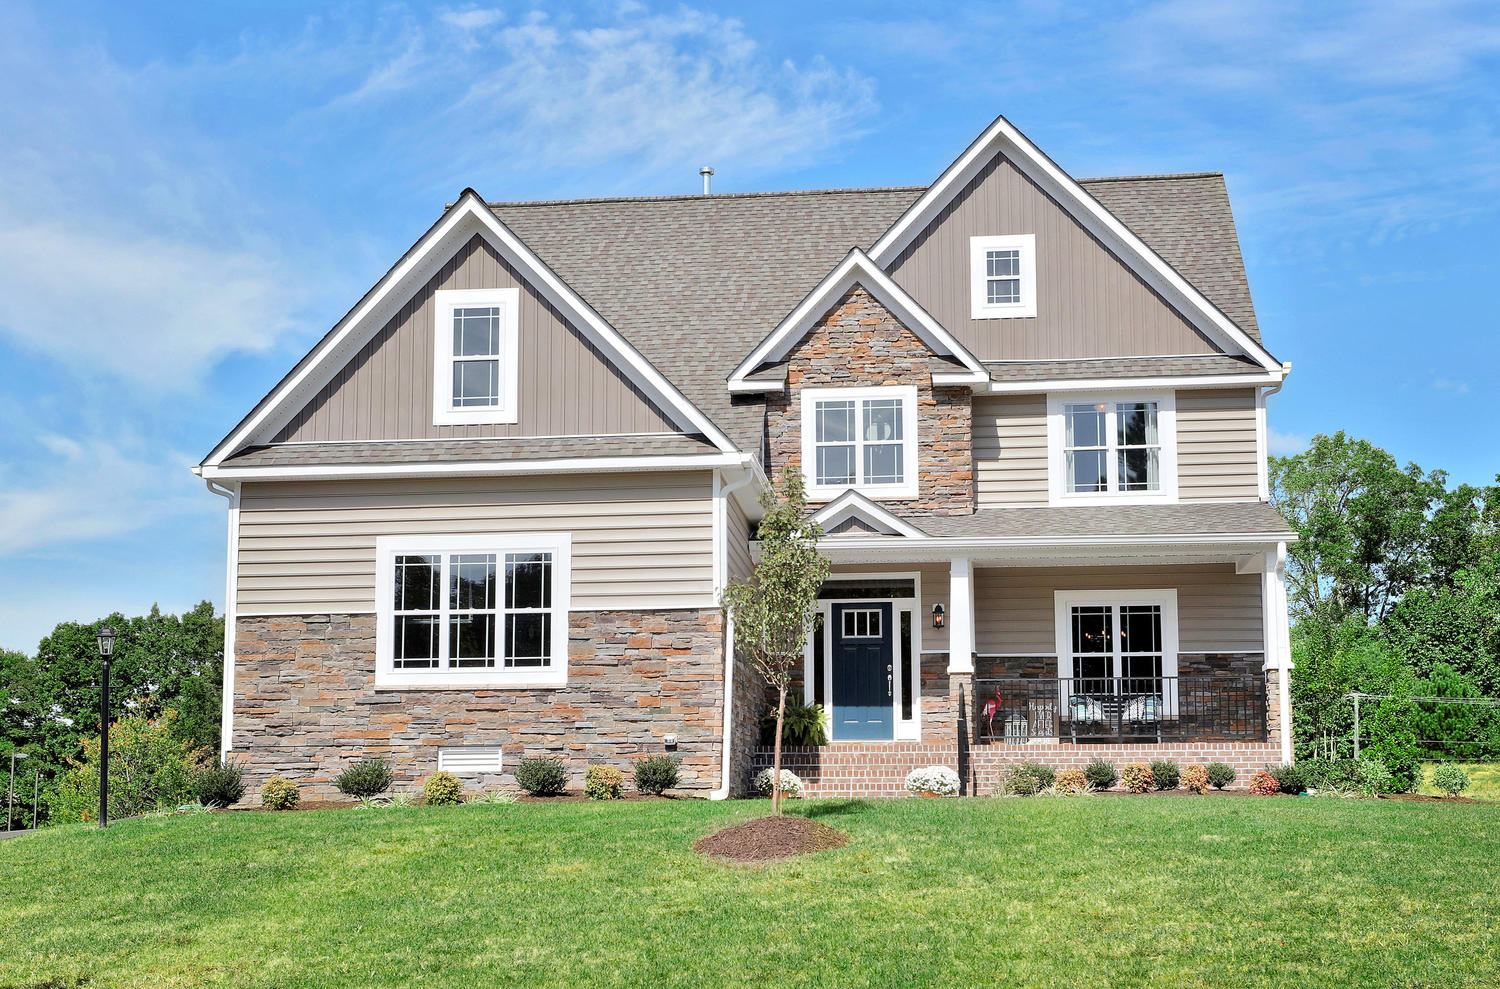 Single Family for Sale at Windermere-The Rosewood 5578 Bankstown Ln Richmond, Virginia 23237 United States